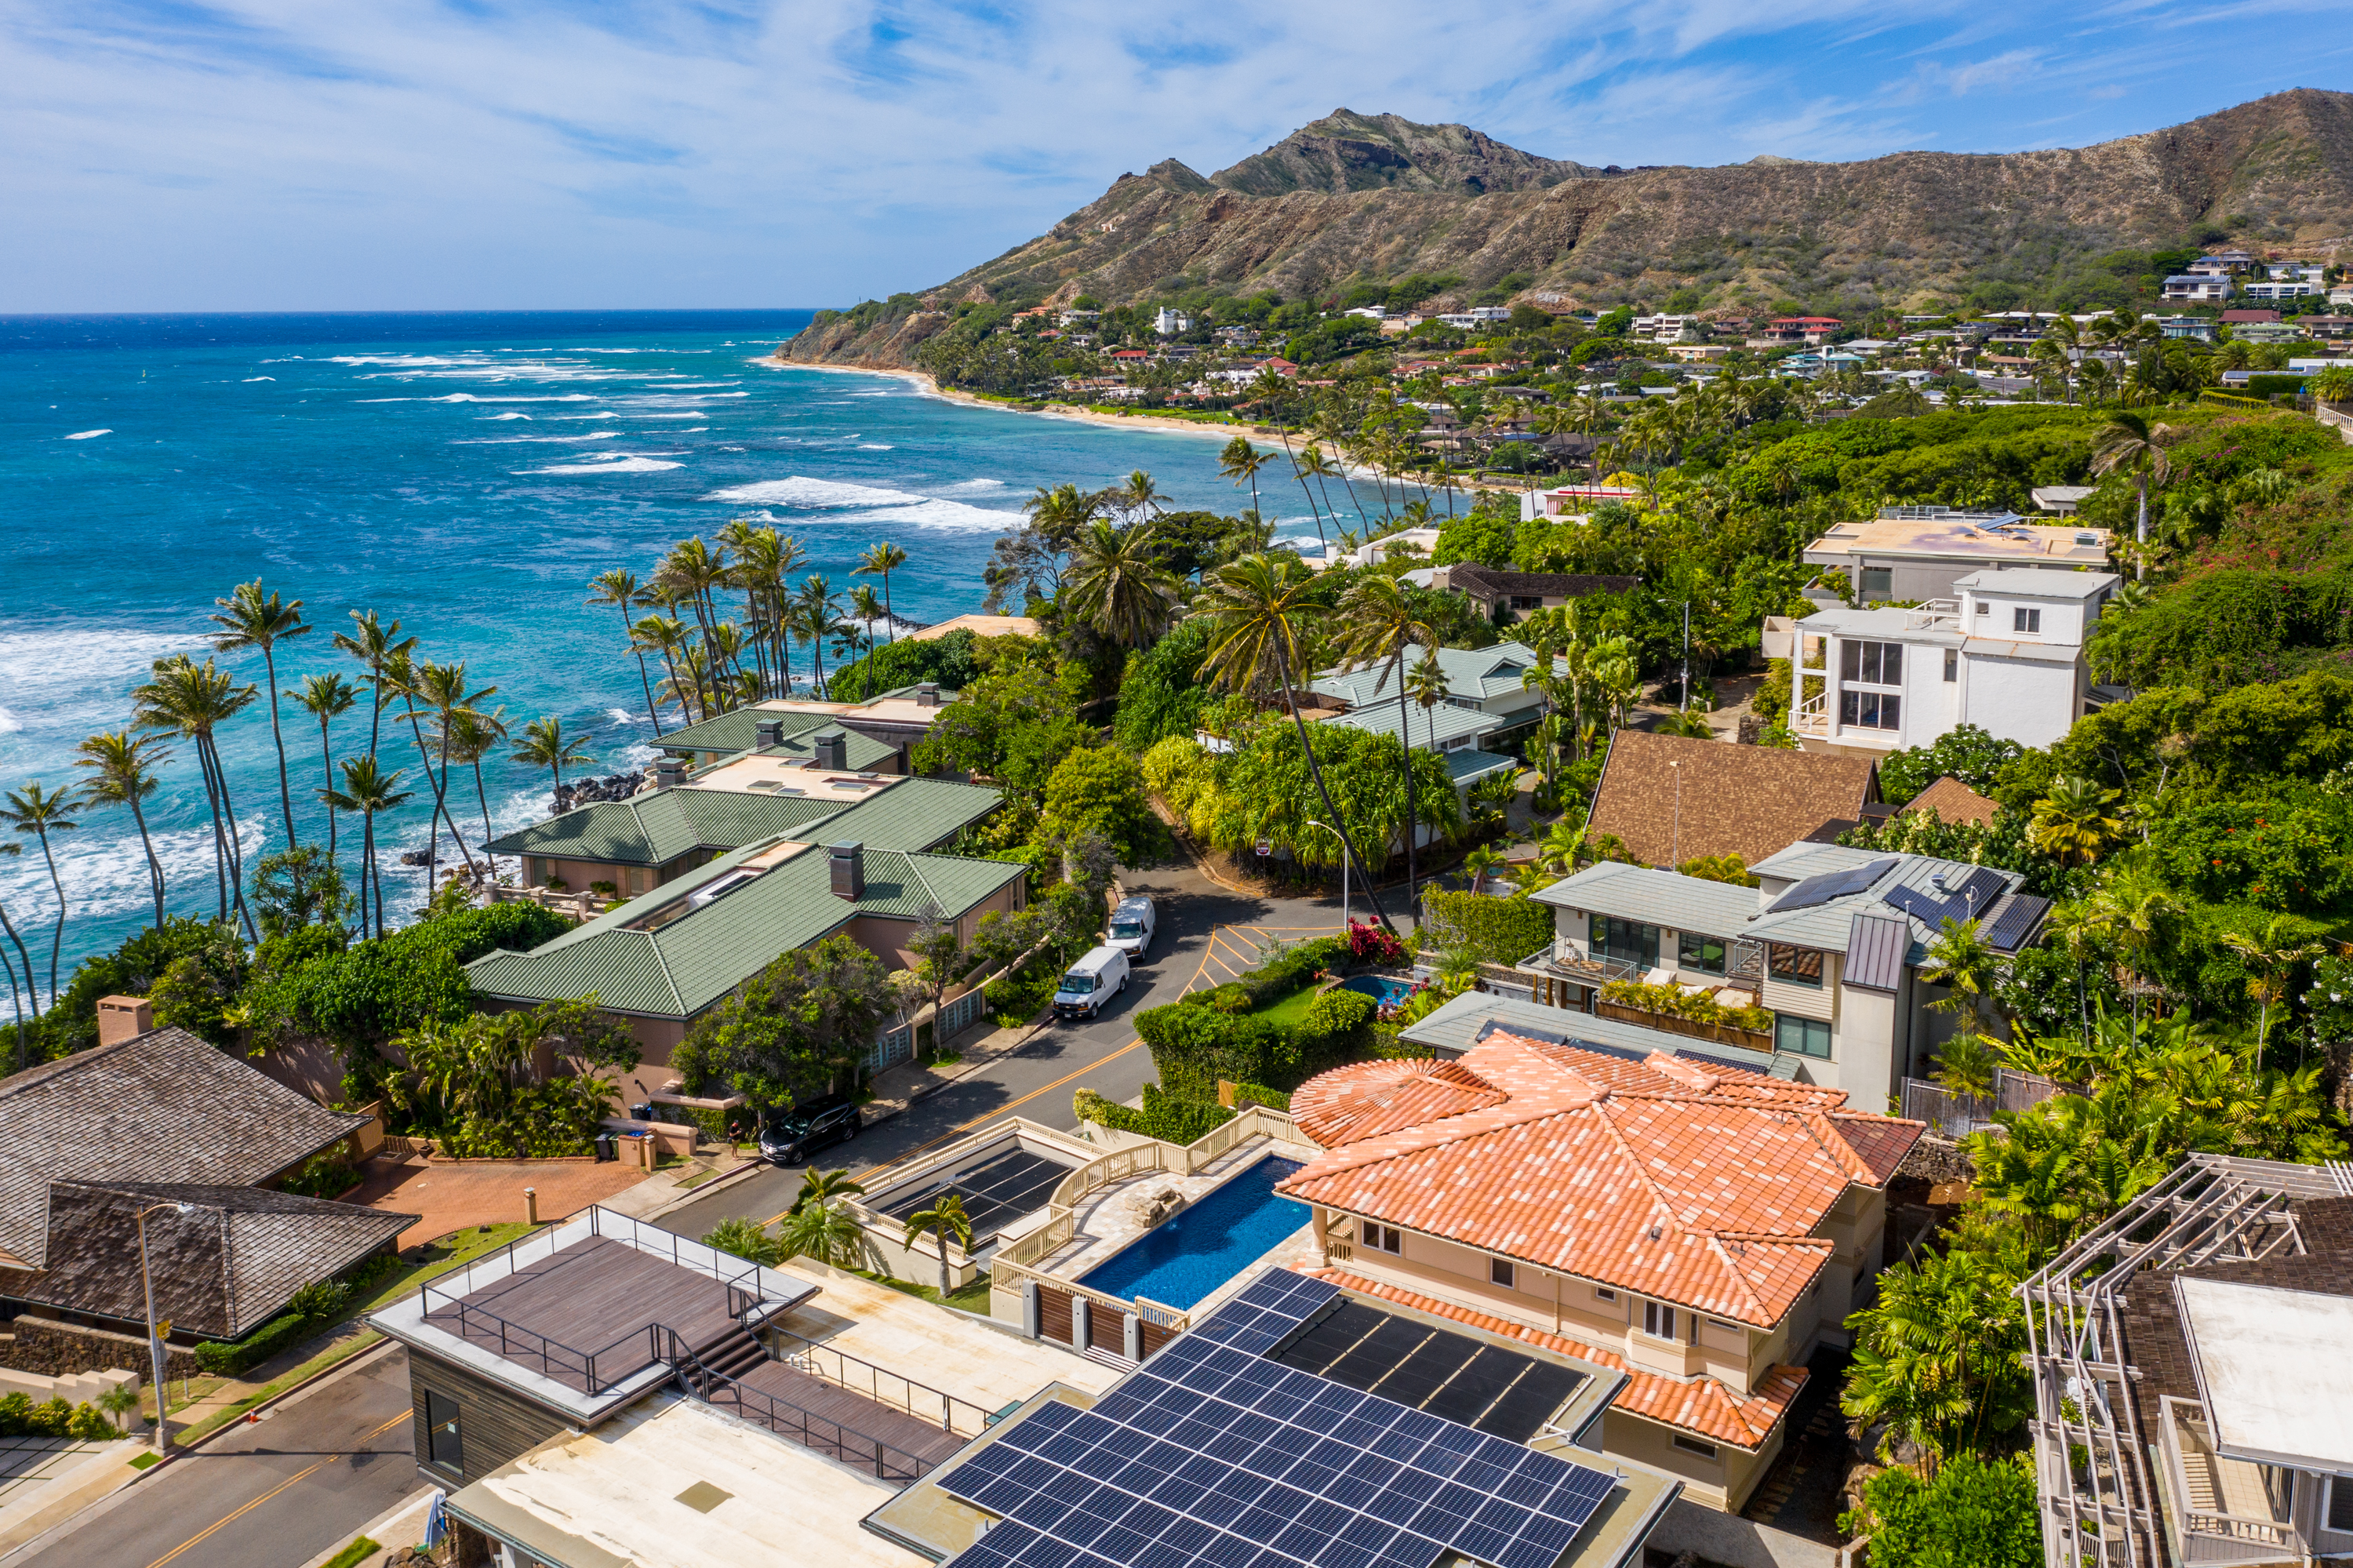 Aerial and ocean view from 4323 Kaikoo Place Honolulu, Hawaii 96816